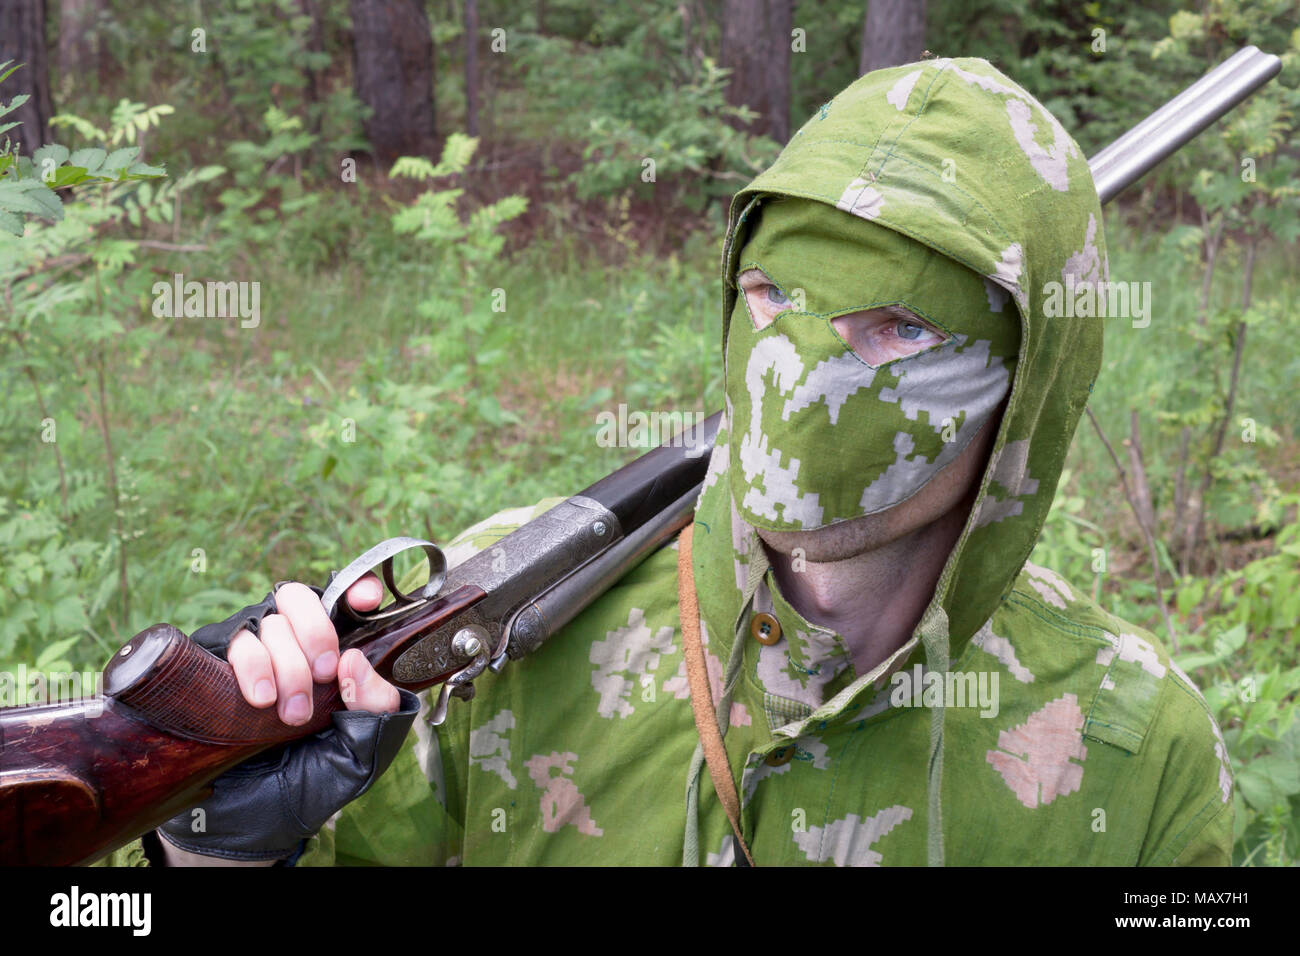 The shooter in camouflage with an old gun Stock Photo